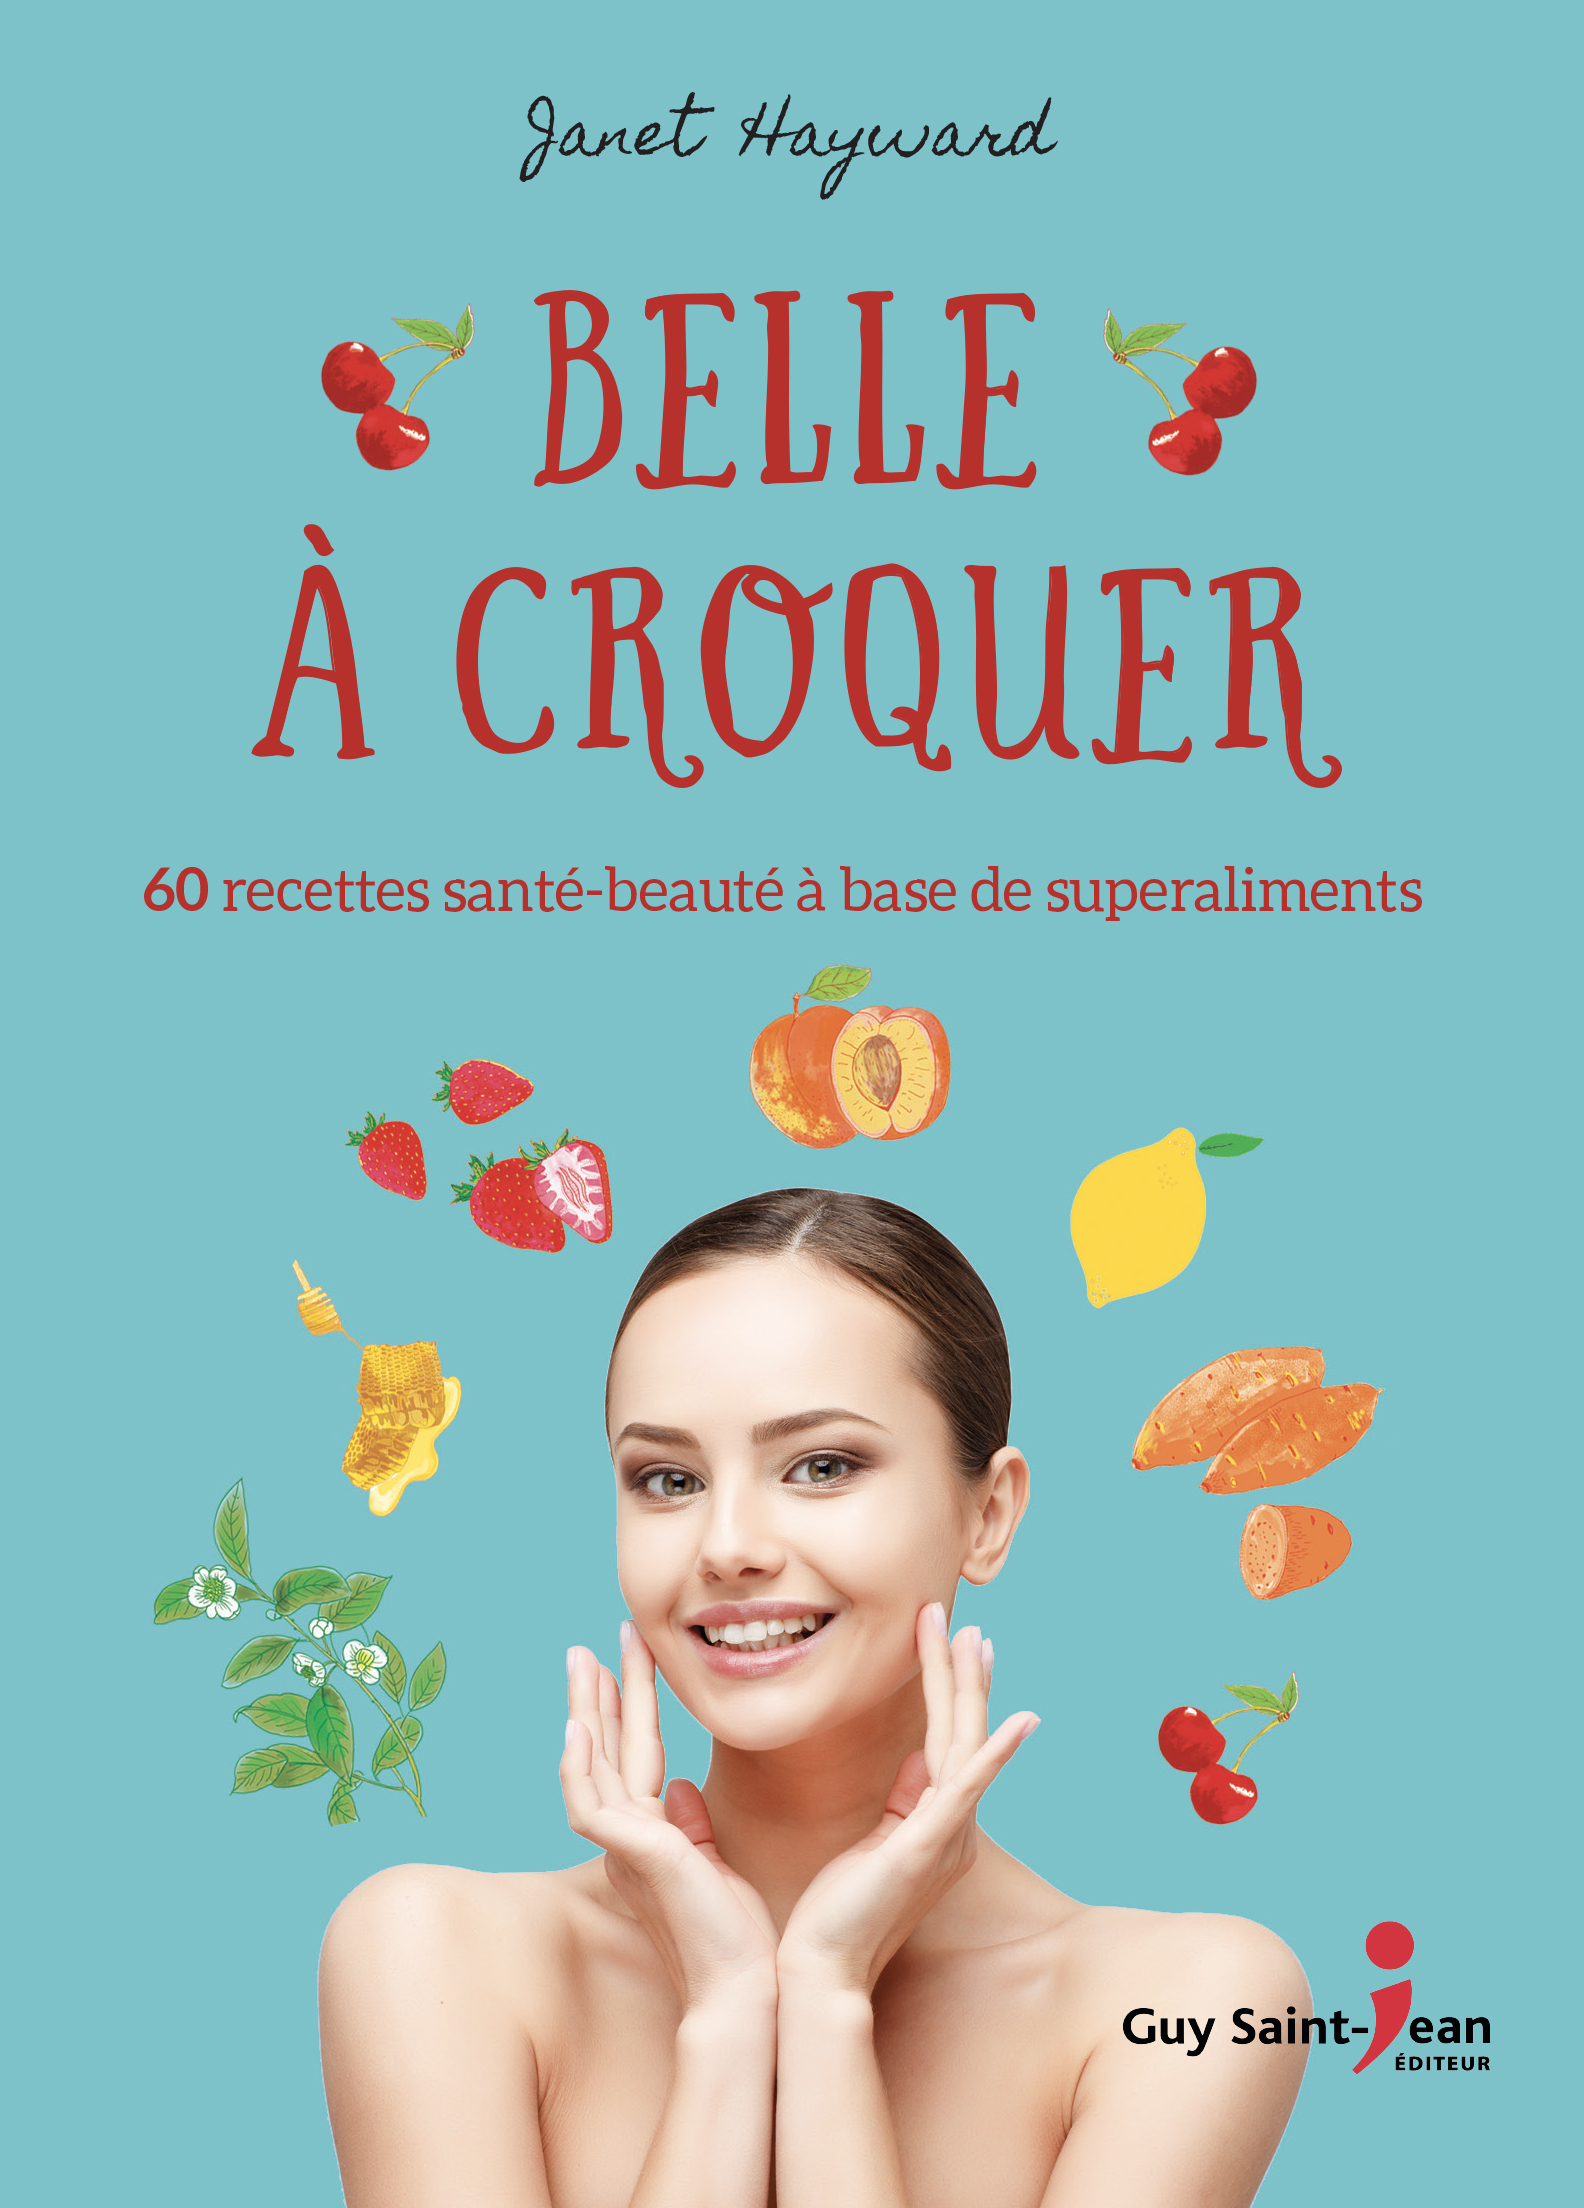 c1_belle-a-croquer_final_hr_eb